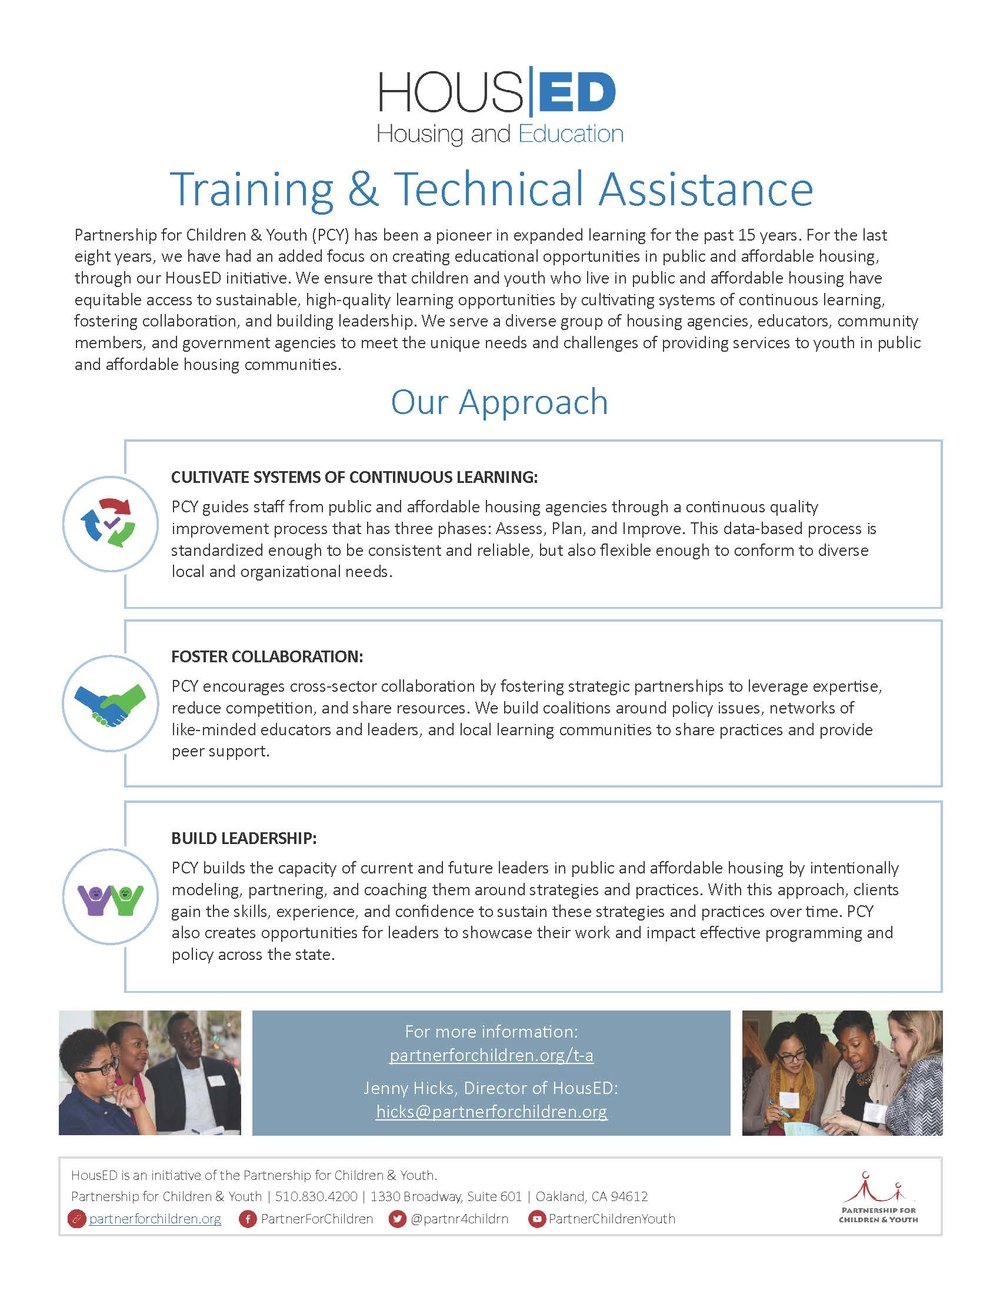 HousED Training & Technical Assistance - Learn more about PCY's approach to training and technical assistance for our HousED initiative.